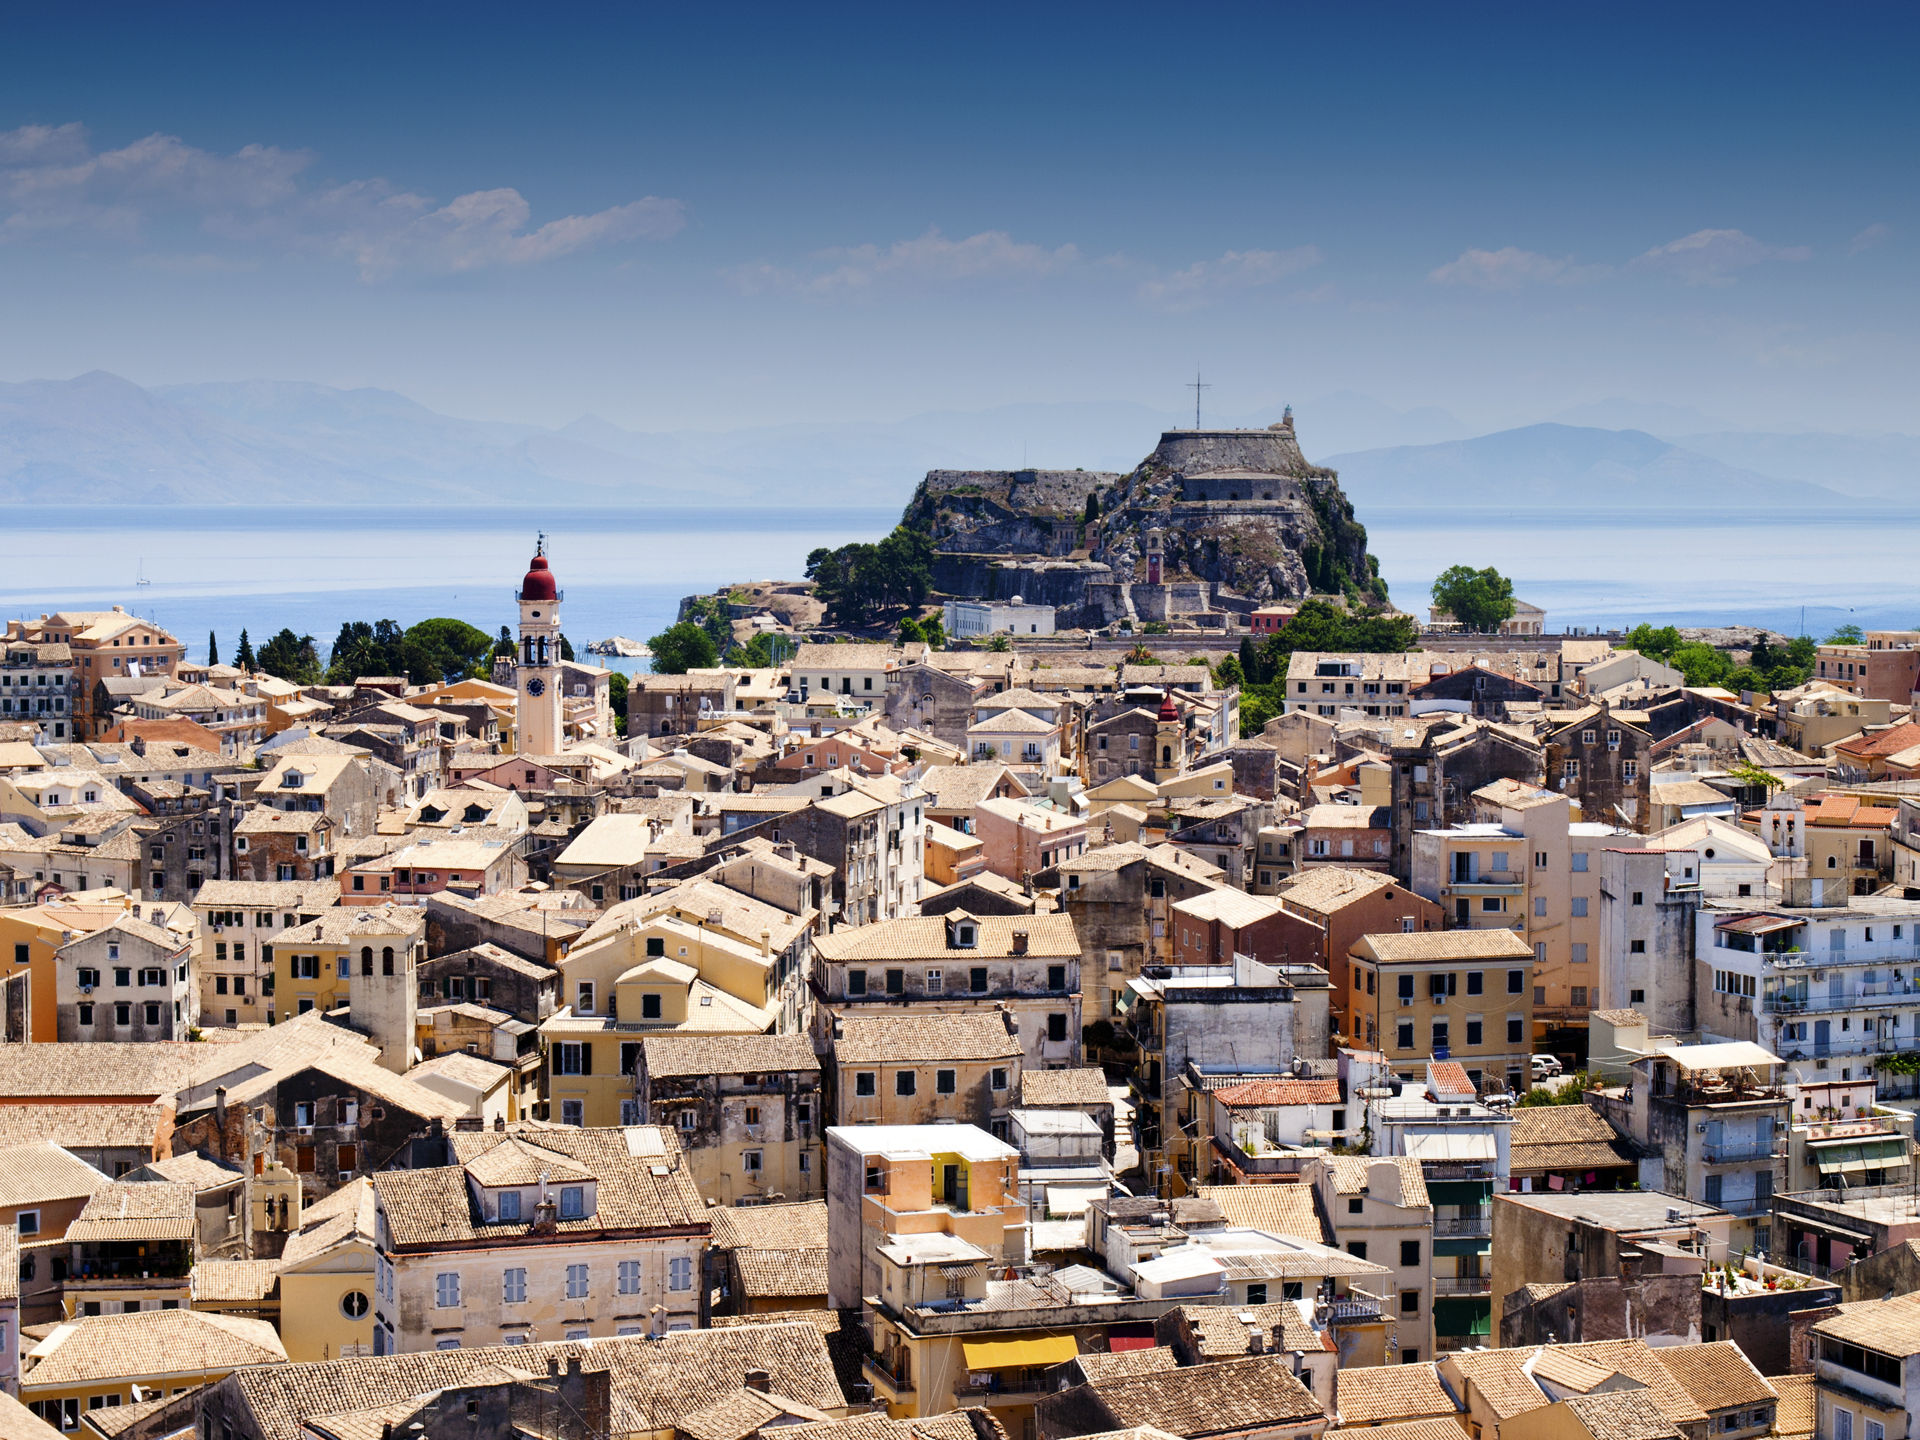 Aerial view of Corfu city